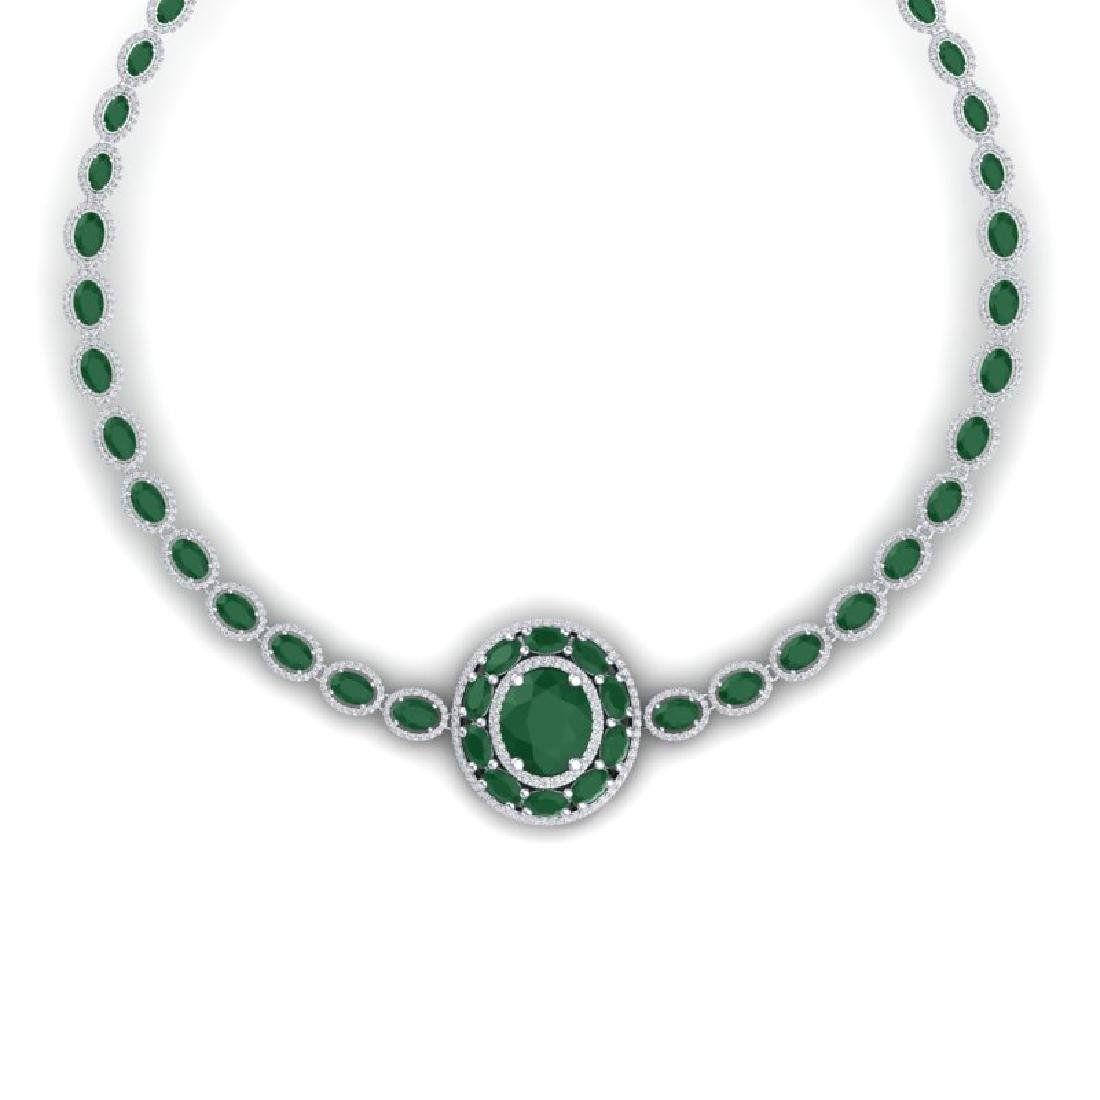 43.54 CTW Royalty Emerald & VS Diamond Necklace 18K - 2